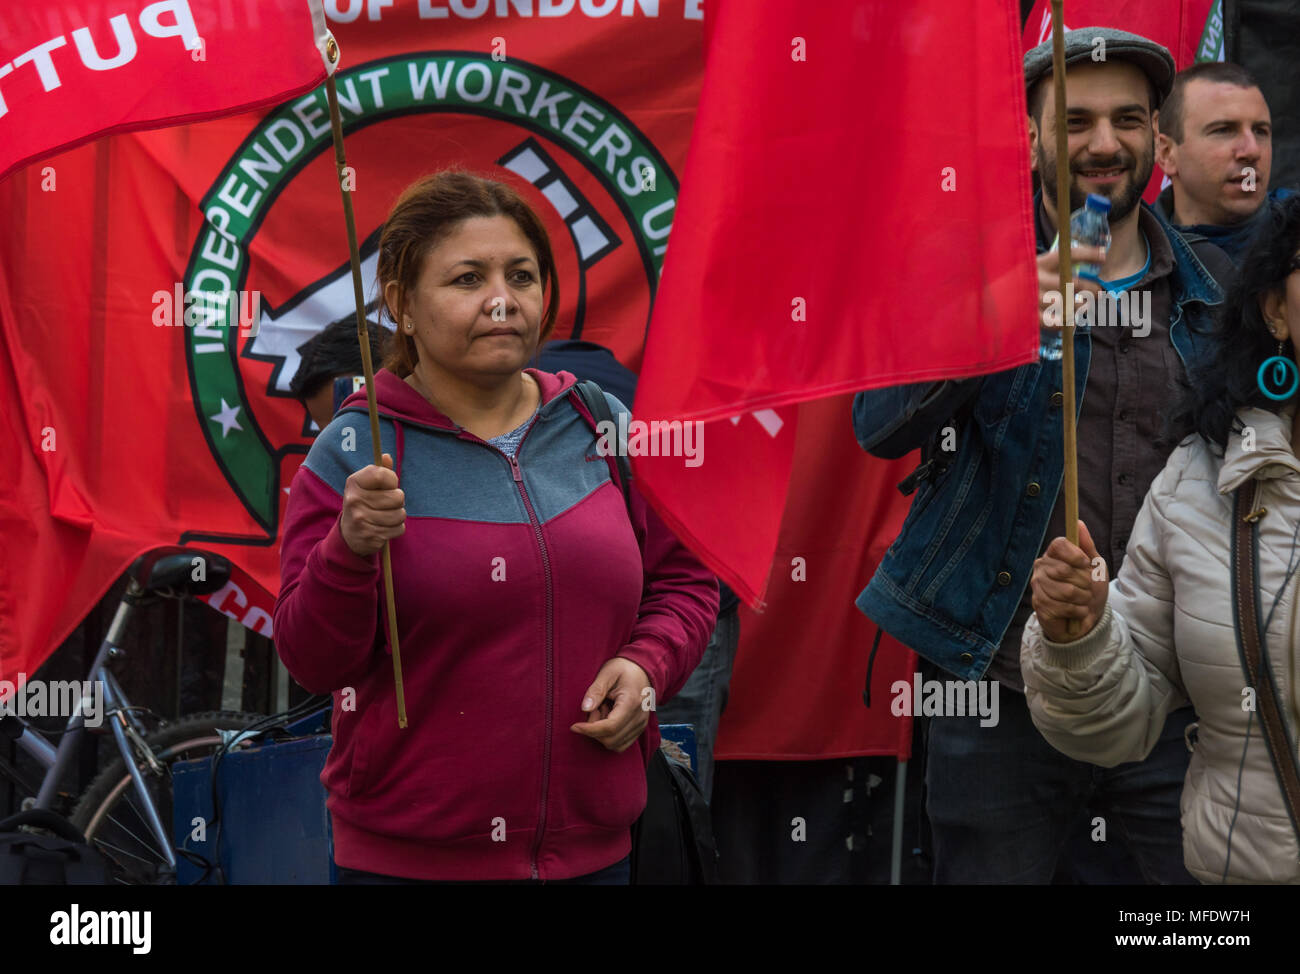 London, UK. 25th April 2018. IWGB members at a noisy rally by workers, students and other trade unionists supporting over 100 cleaners, porters, security officers, receptionists, gardeners, post room staff and audiovisual staff in the Independent Workers Union of Great Britain - IWGB at the end of the first day of a two day strike at the University of London central administration. The workers, employed by various outsourcing companies are demanding to be directly employed by the University, and receive the same conditions and benefits as directly employed colleagues; outsourced workers receiv - Stock Image